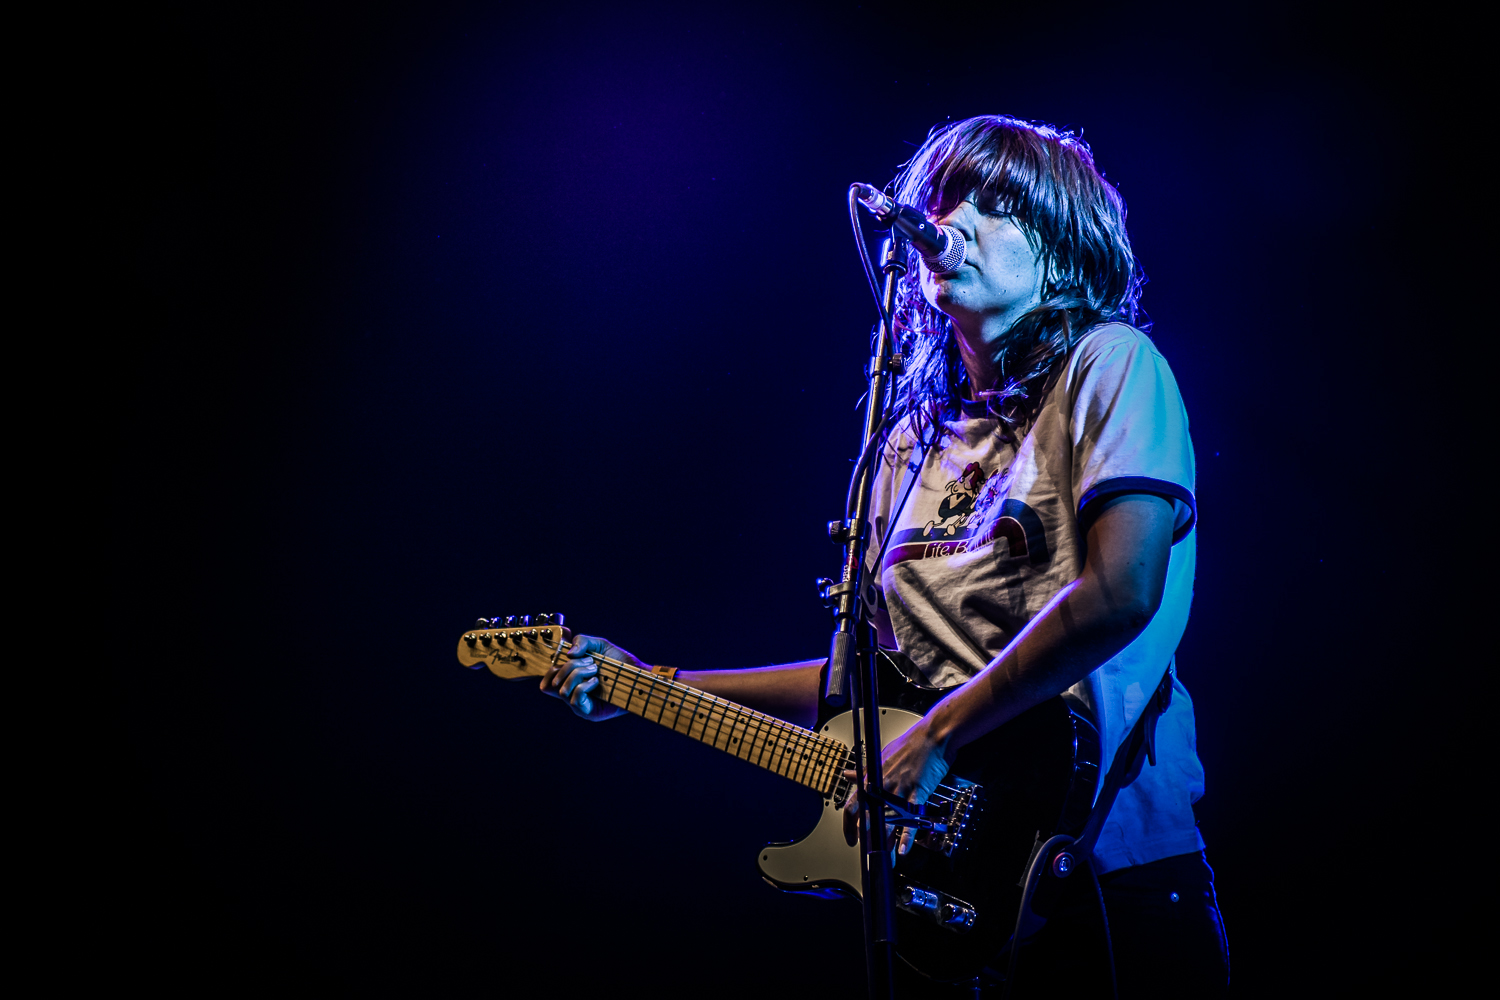 04_CourtneyBarnett_008